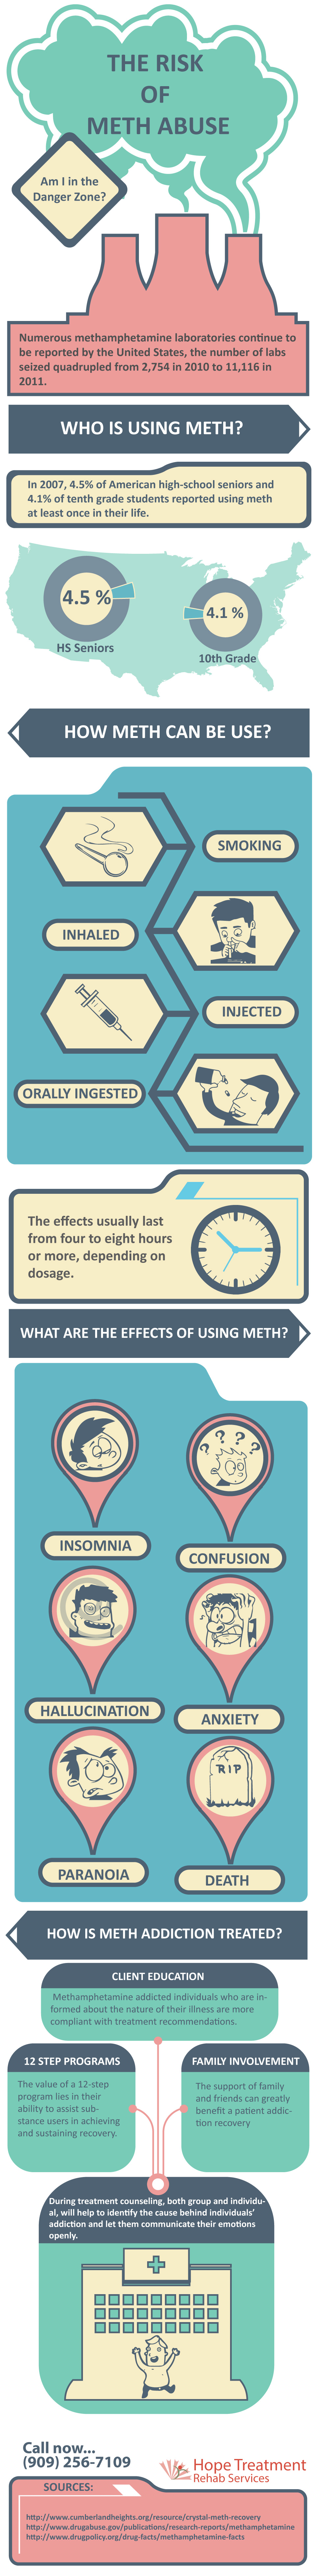 The Risk of Meth Abuse